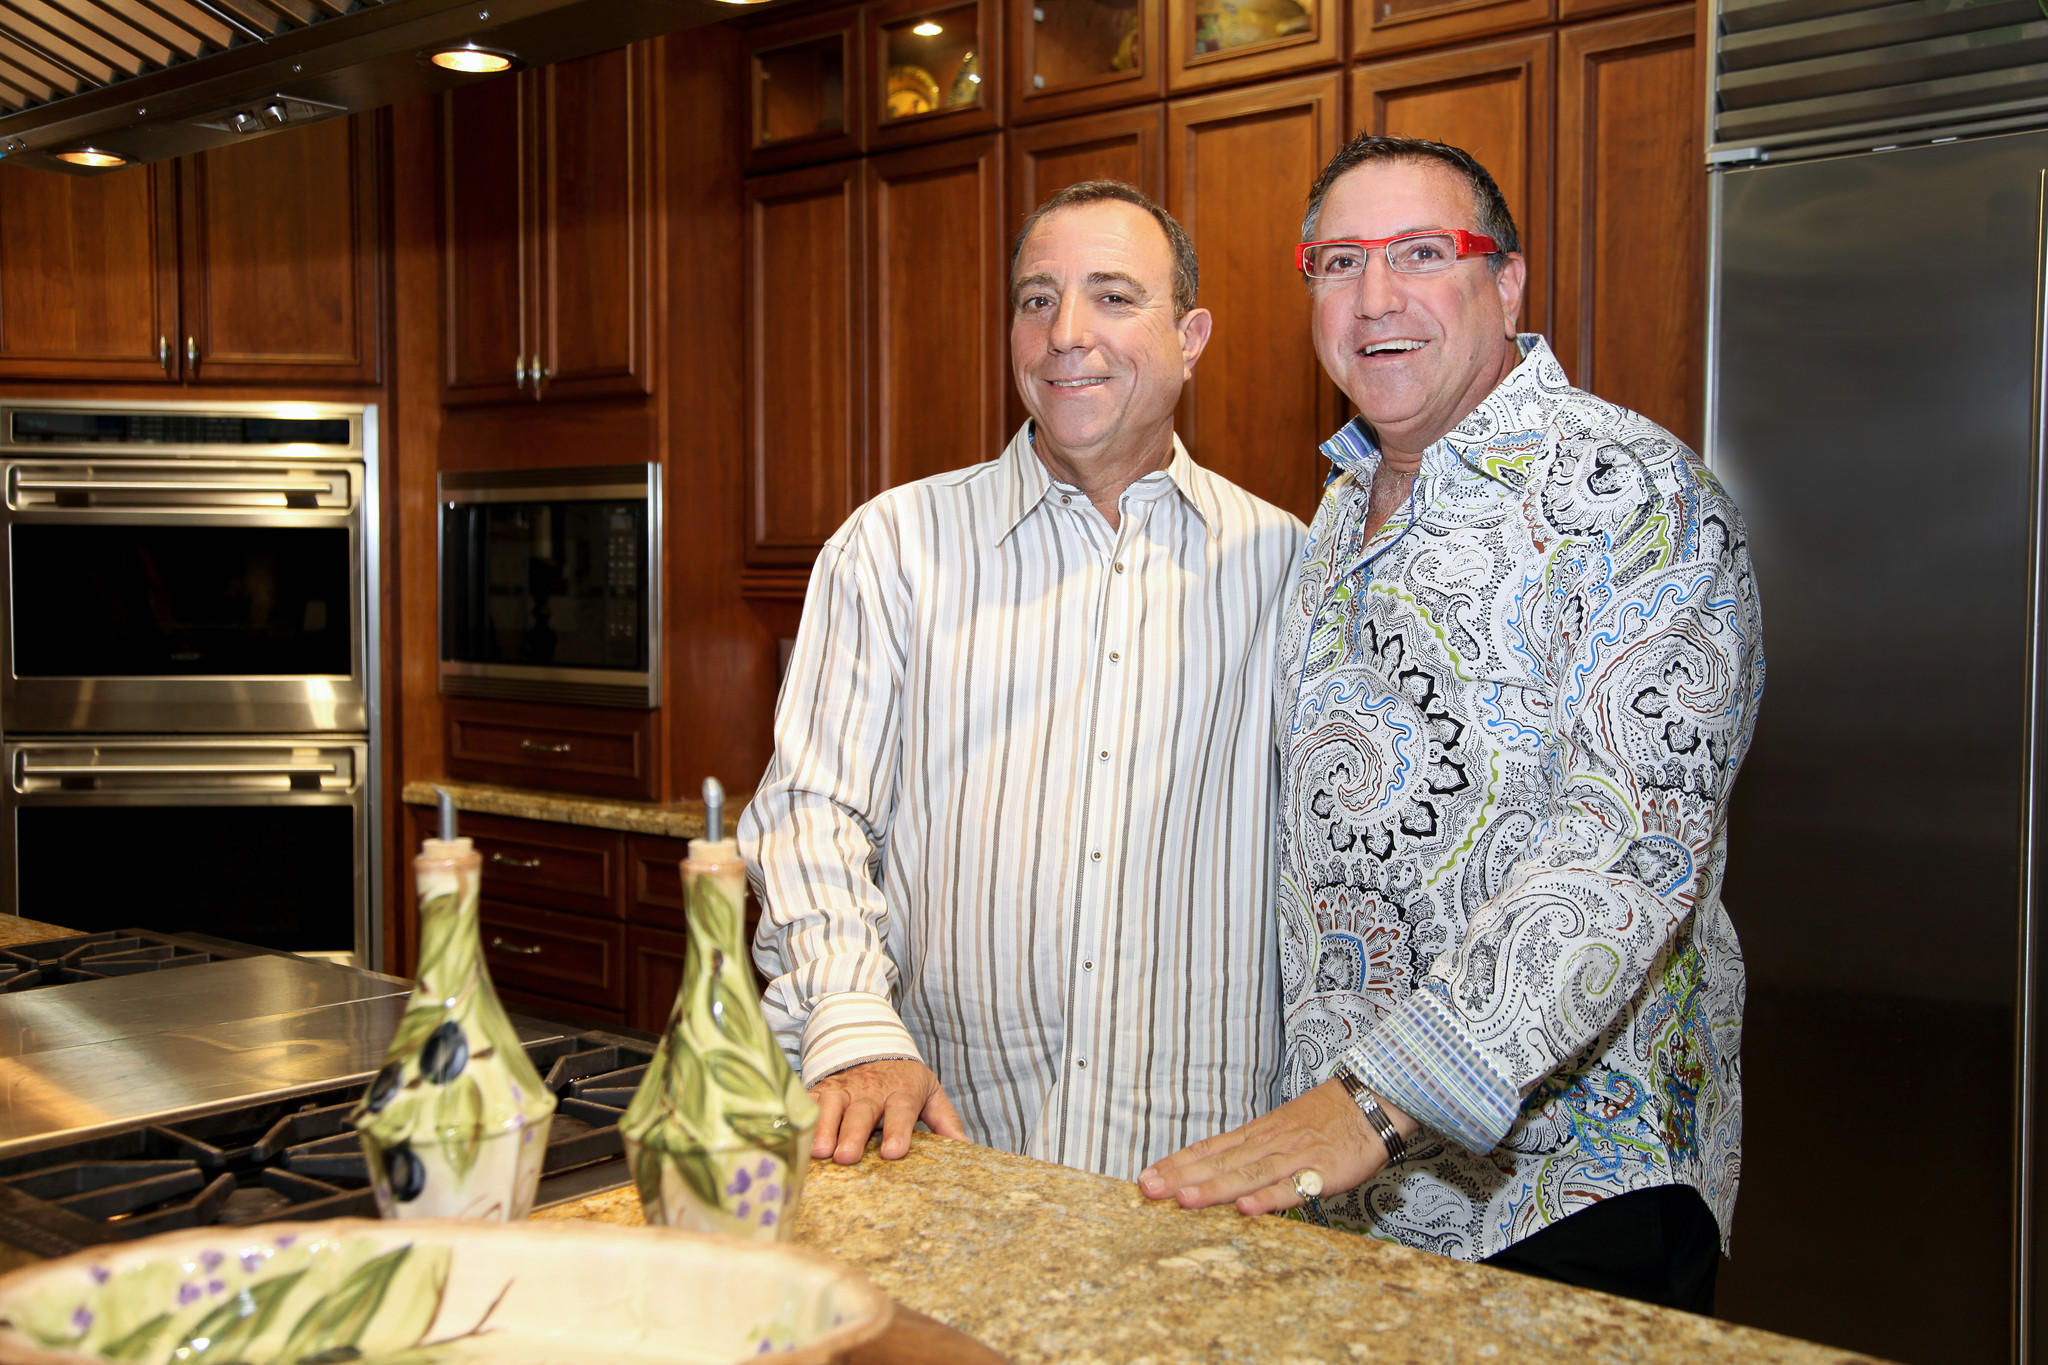 Joe Feinberg, left, and Bill Feinberg, co-founders of Allied Kitchen & Bath, announced plans to open an additional showroom at 3484 NE 12th Ave. Allied's main showroom is at 616 W. Oakland Park Blvd., Fort Lauderdale.